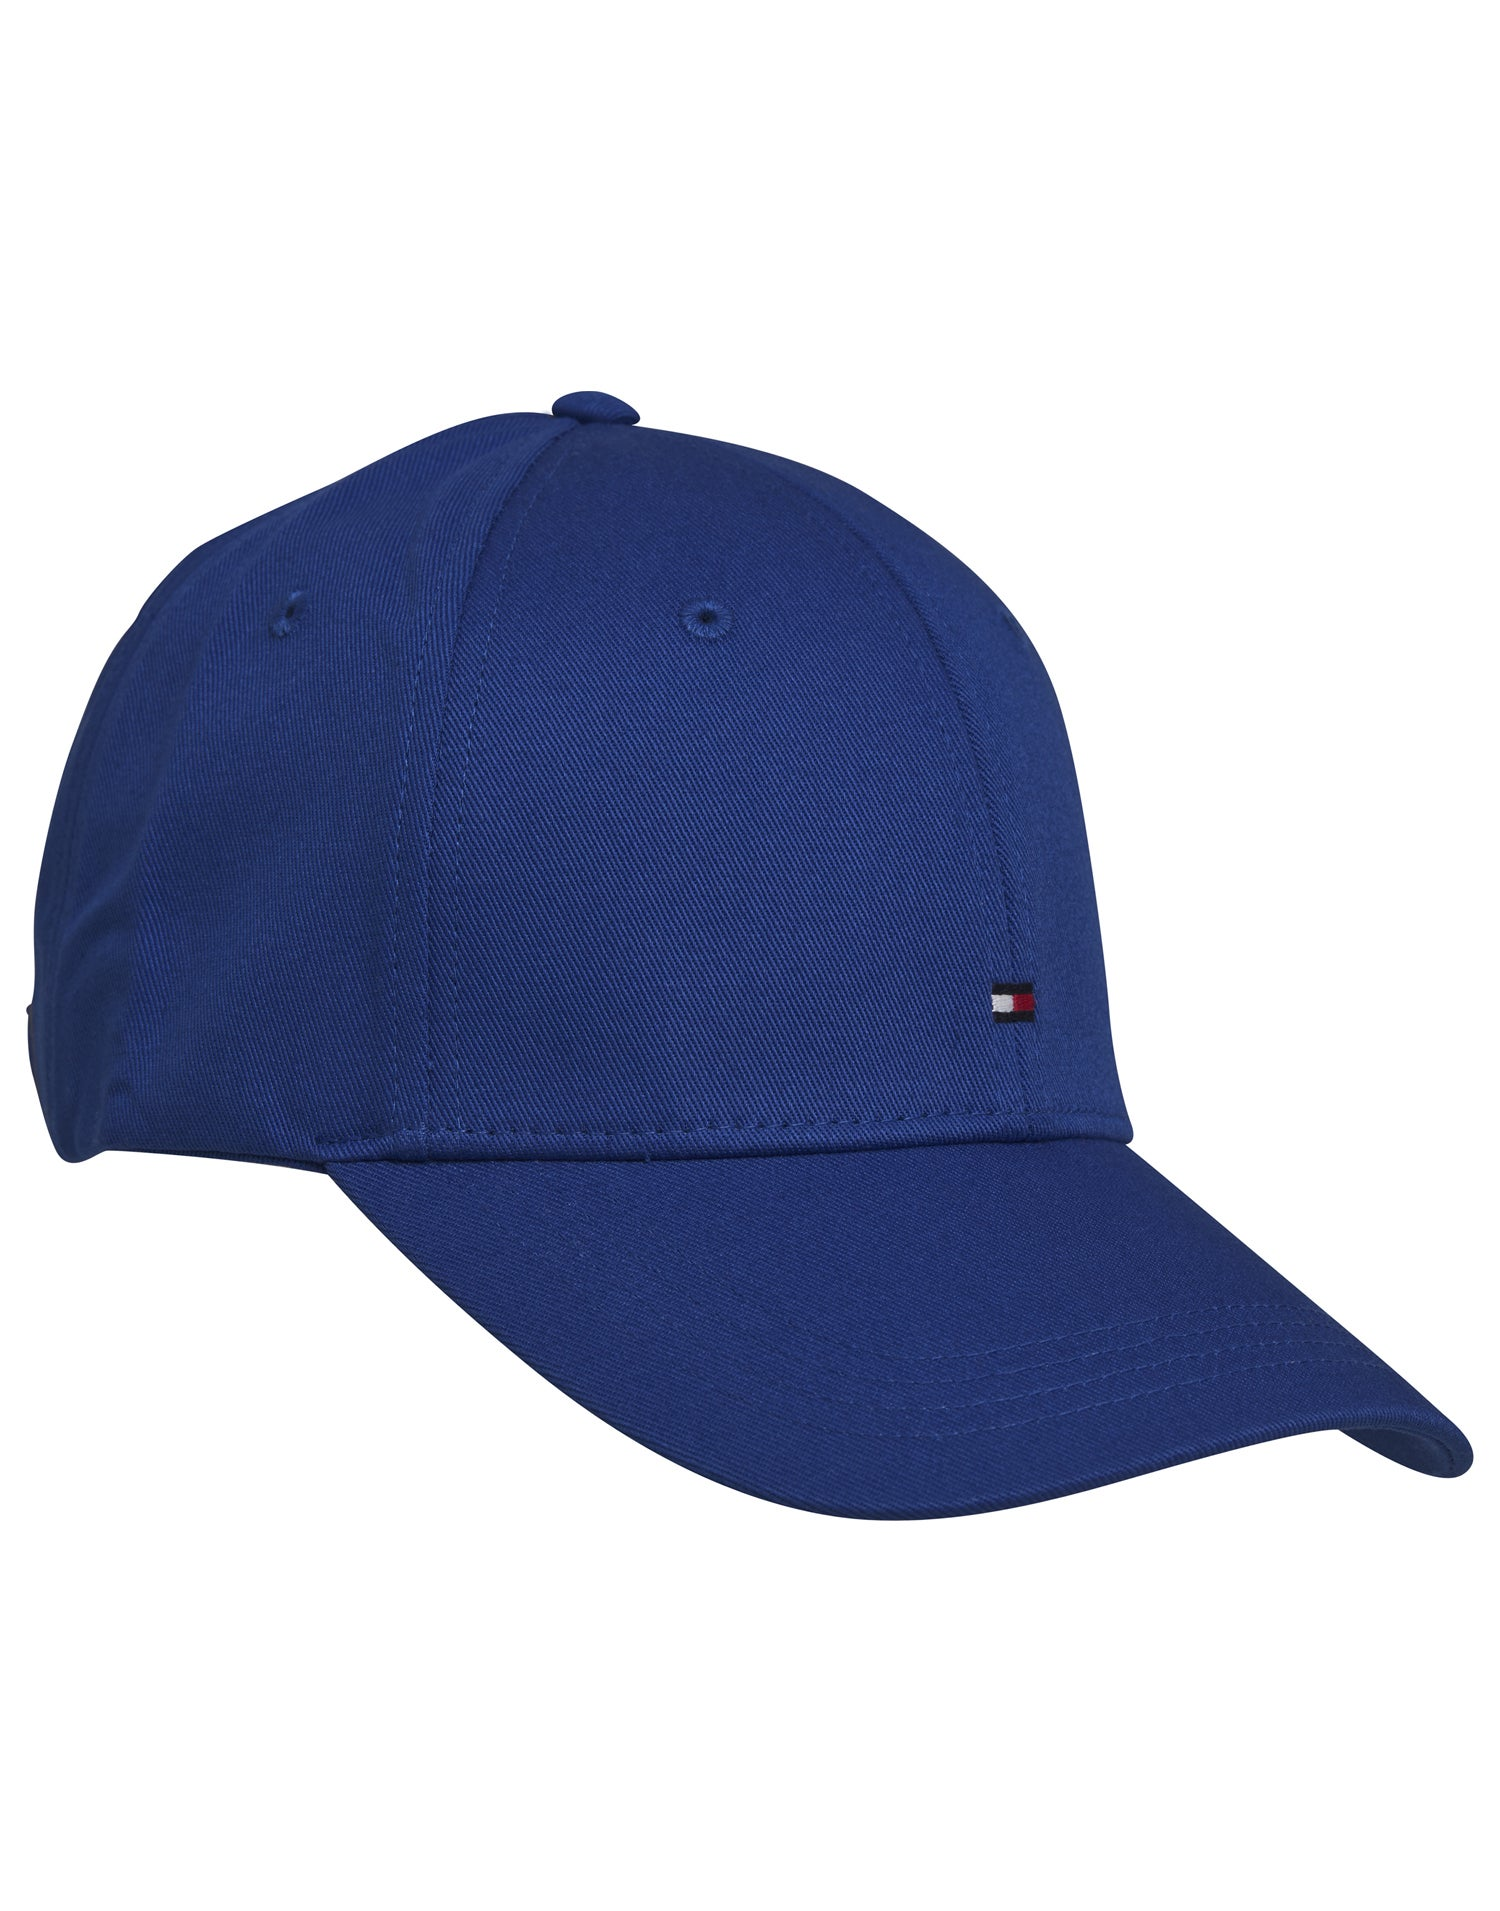 26d53ffb6 Tommy Hilfiger Flag Cotton Baseball Cap - Surf The Web | Country Attire